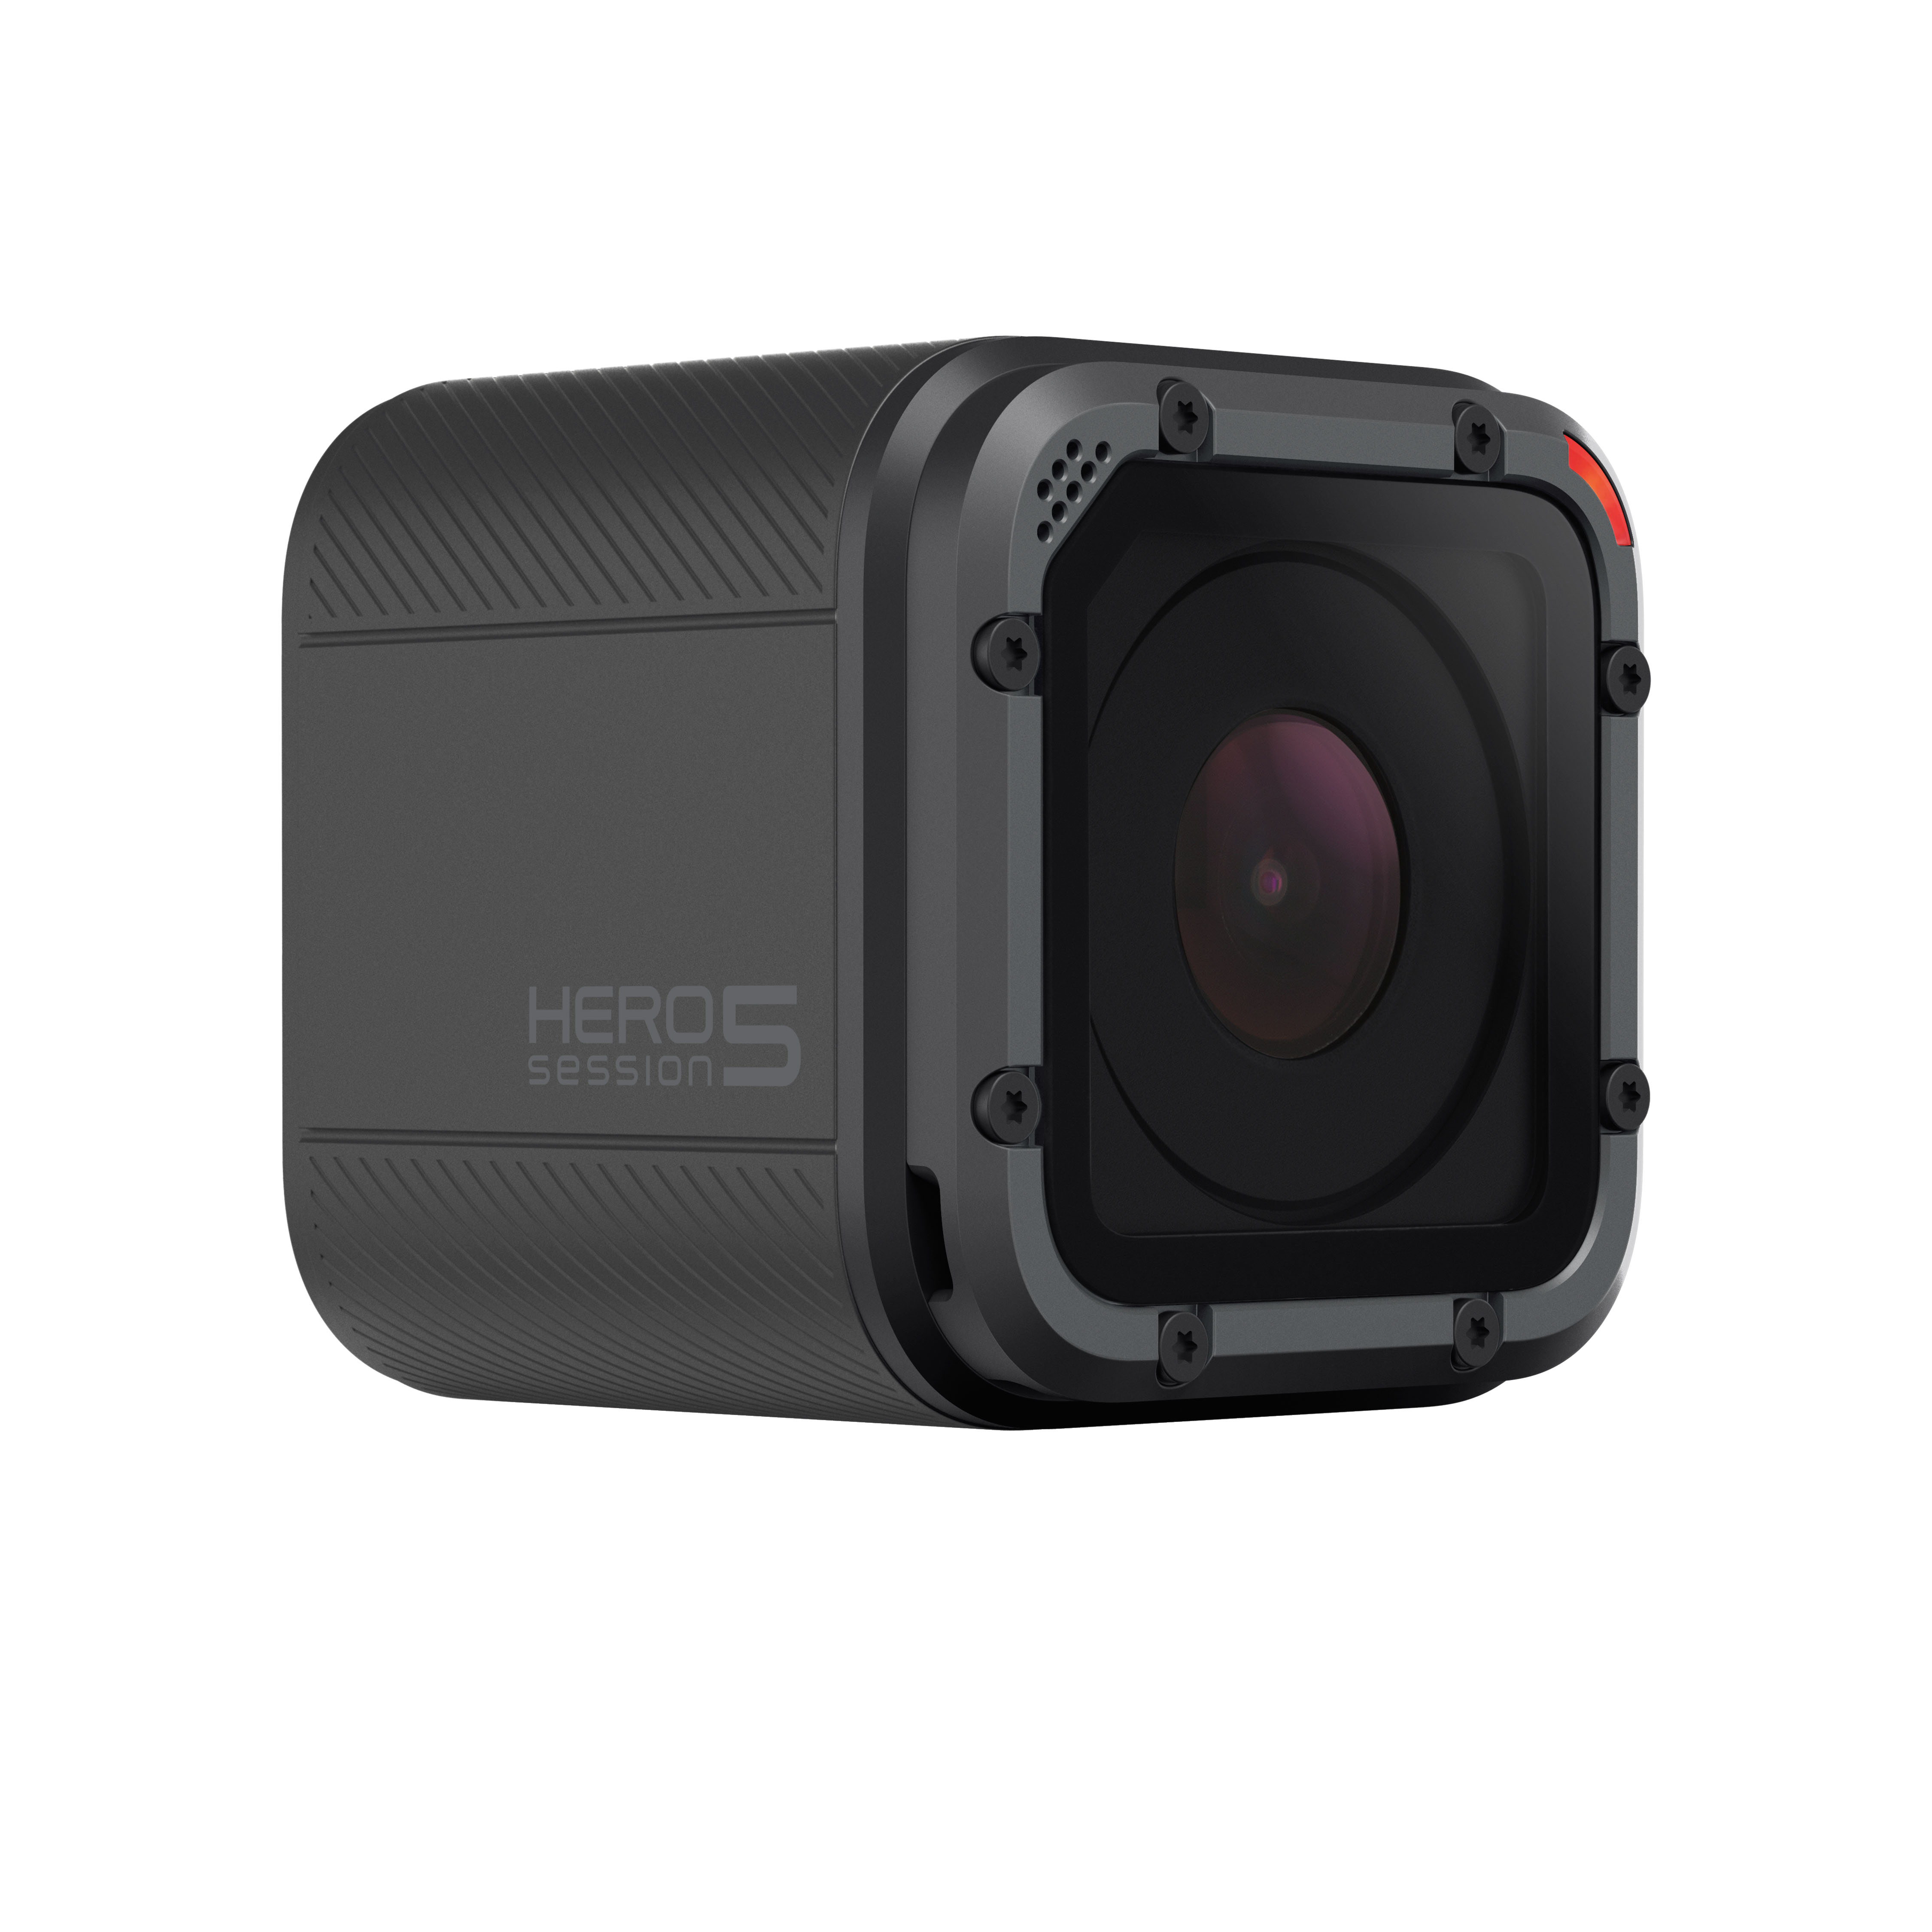 Holiday gift guide for tech style running adventure and beyond image via go pro 4 34 solutioingenieria Images